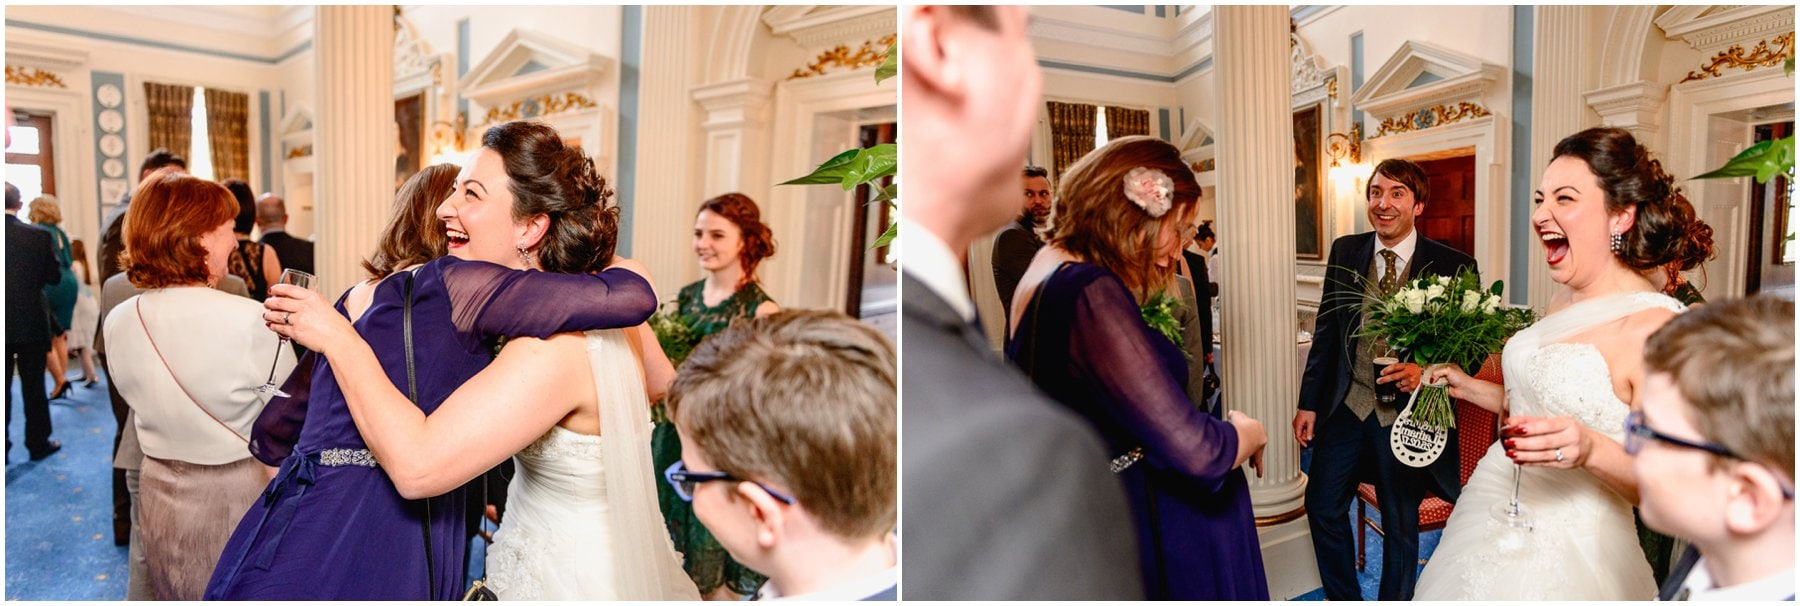 Rebecca and Andy's Swinfen Hall Wedding, by West Midlands and Birmingham based photographer Lisa Carpenter Photography. Winter wedding with wild stag theme and thistle details.